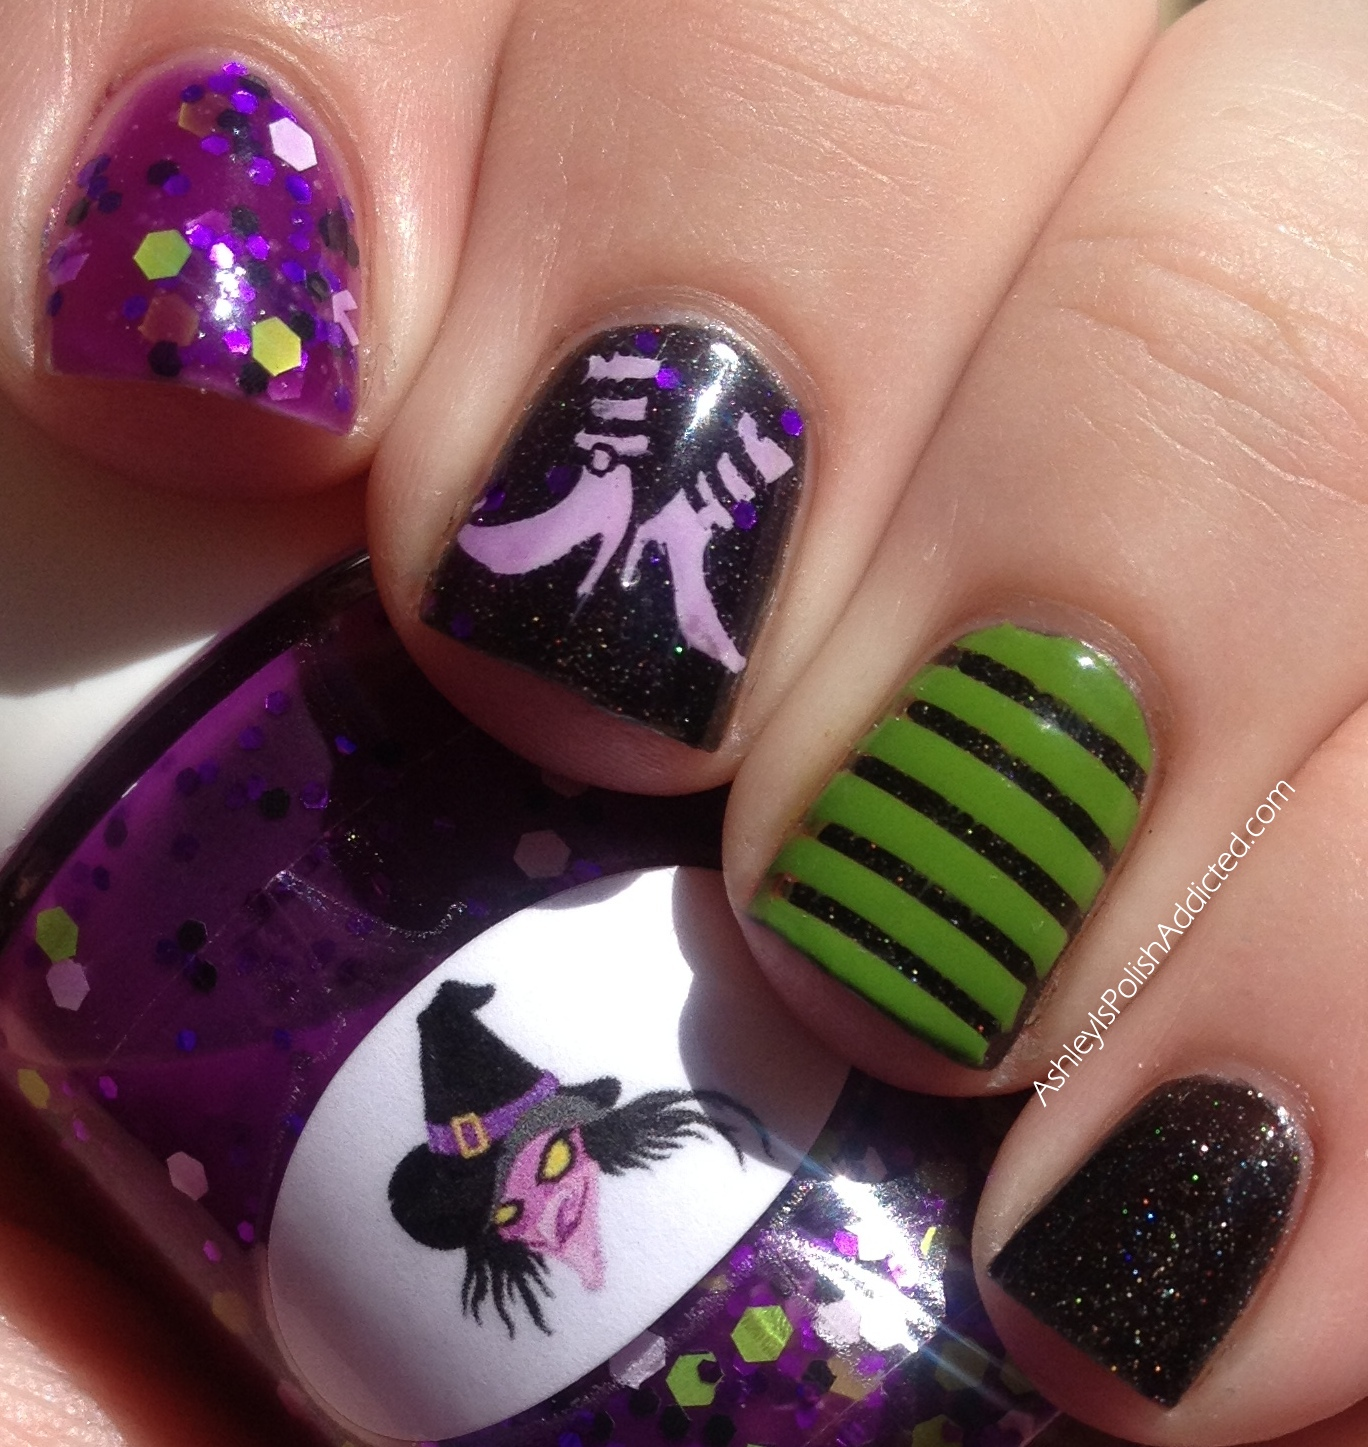 I stamped on the witch feet using a plain white creme and then did a VERY  THIN coat of Witch over it to tint them purple just a bit. - Ashley Is PolishAddicted: The Nail Junkie Black Cat, Witch, Nail